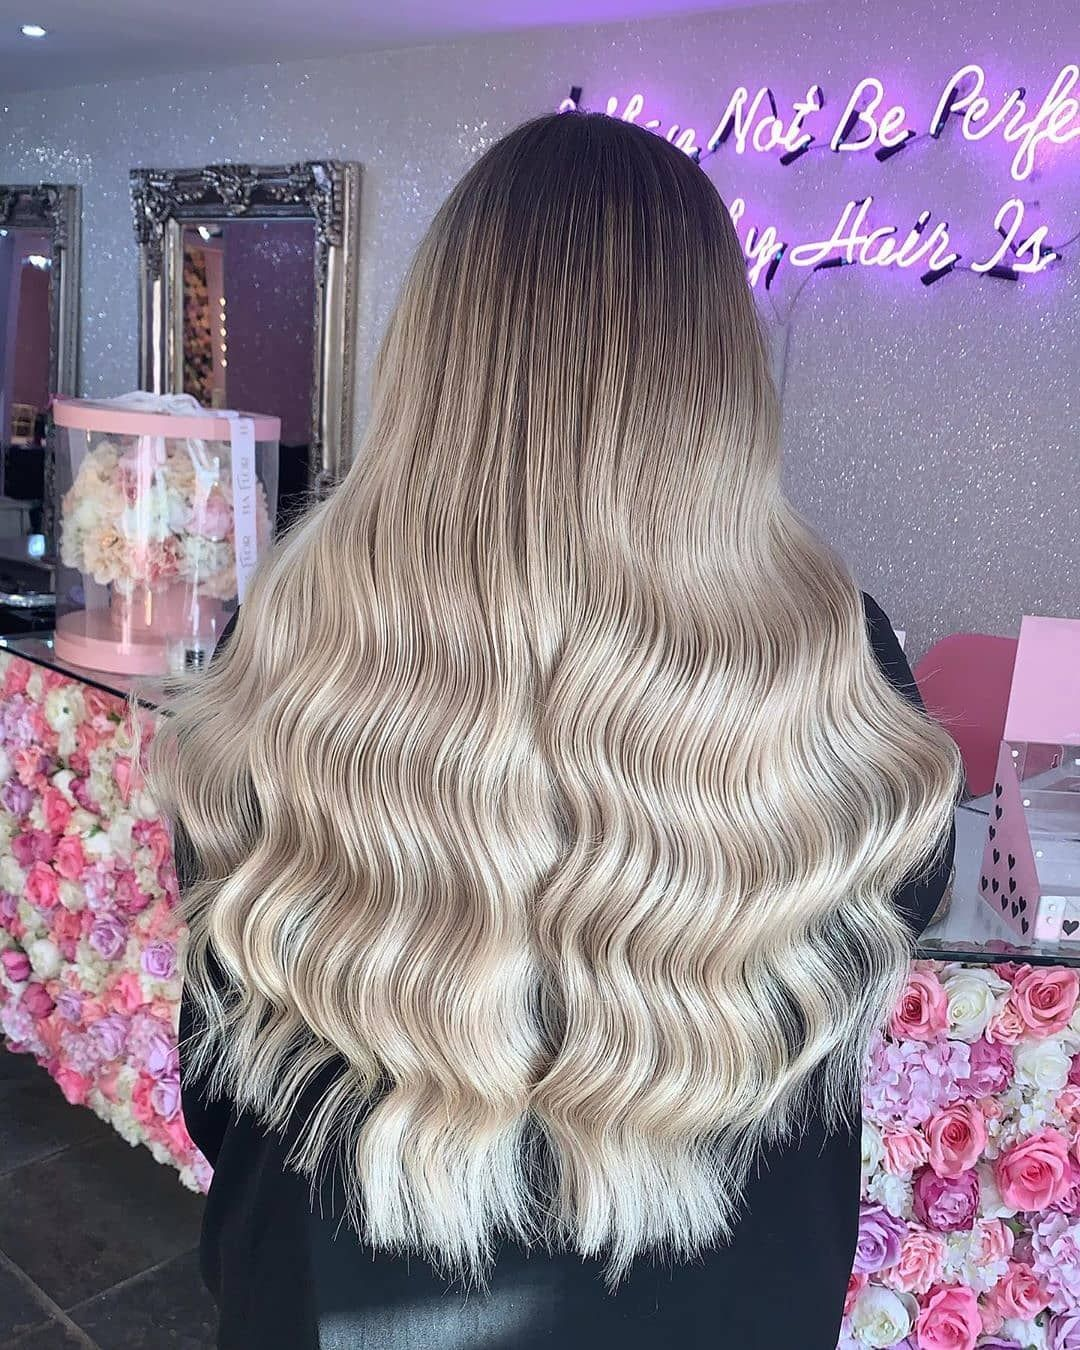 Beauty Works Hair Extensions On Instagram Hair 𝓖𝓞𝓐𝓛𝓢 22 Gold Double Weft In Shade Barley Blonde Fit By Annajoneshair Contact The Salon Dire